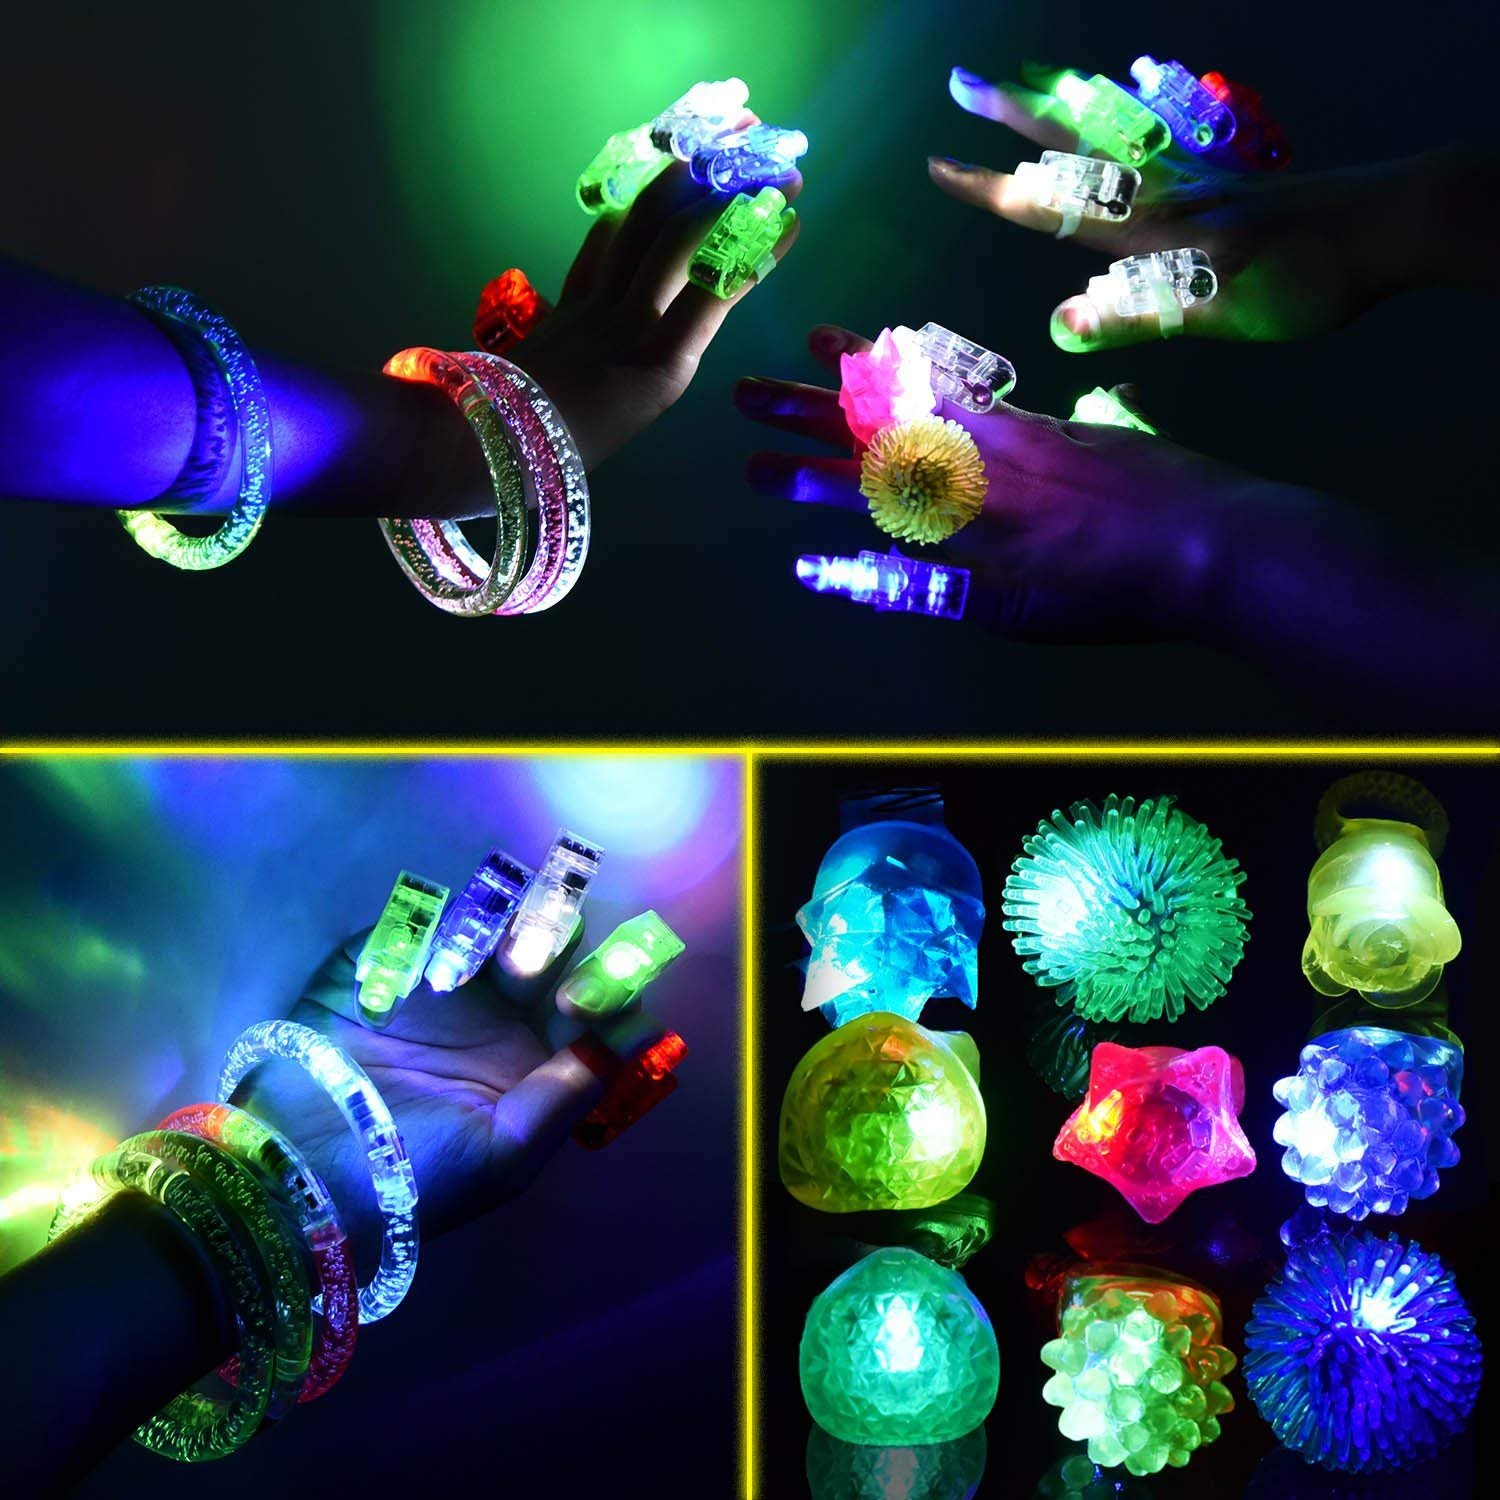 68 Pack LED Light Up Toys Halloween LED Glow Party Favors for Kids Glow in the Dark Party Supplies 4 Flashing Slotted Shades Glasses 10 Glow Rings 50 LED Finger Lights 5 LED Bracelets Christmas Gift by Godlike (Image #4)